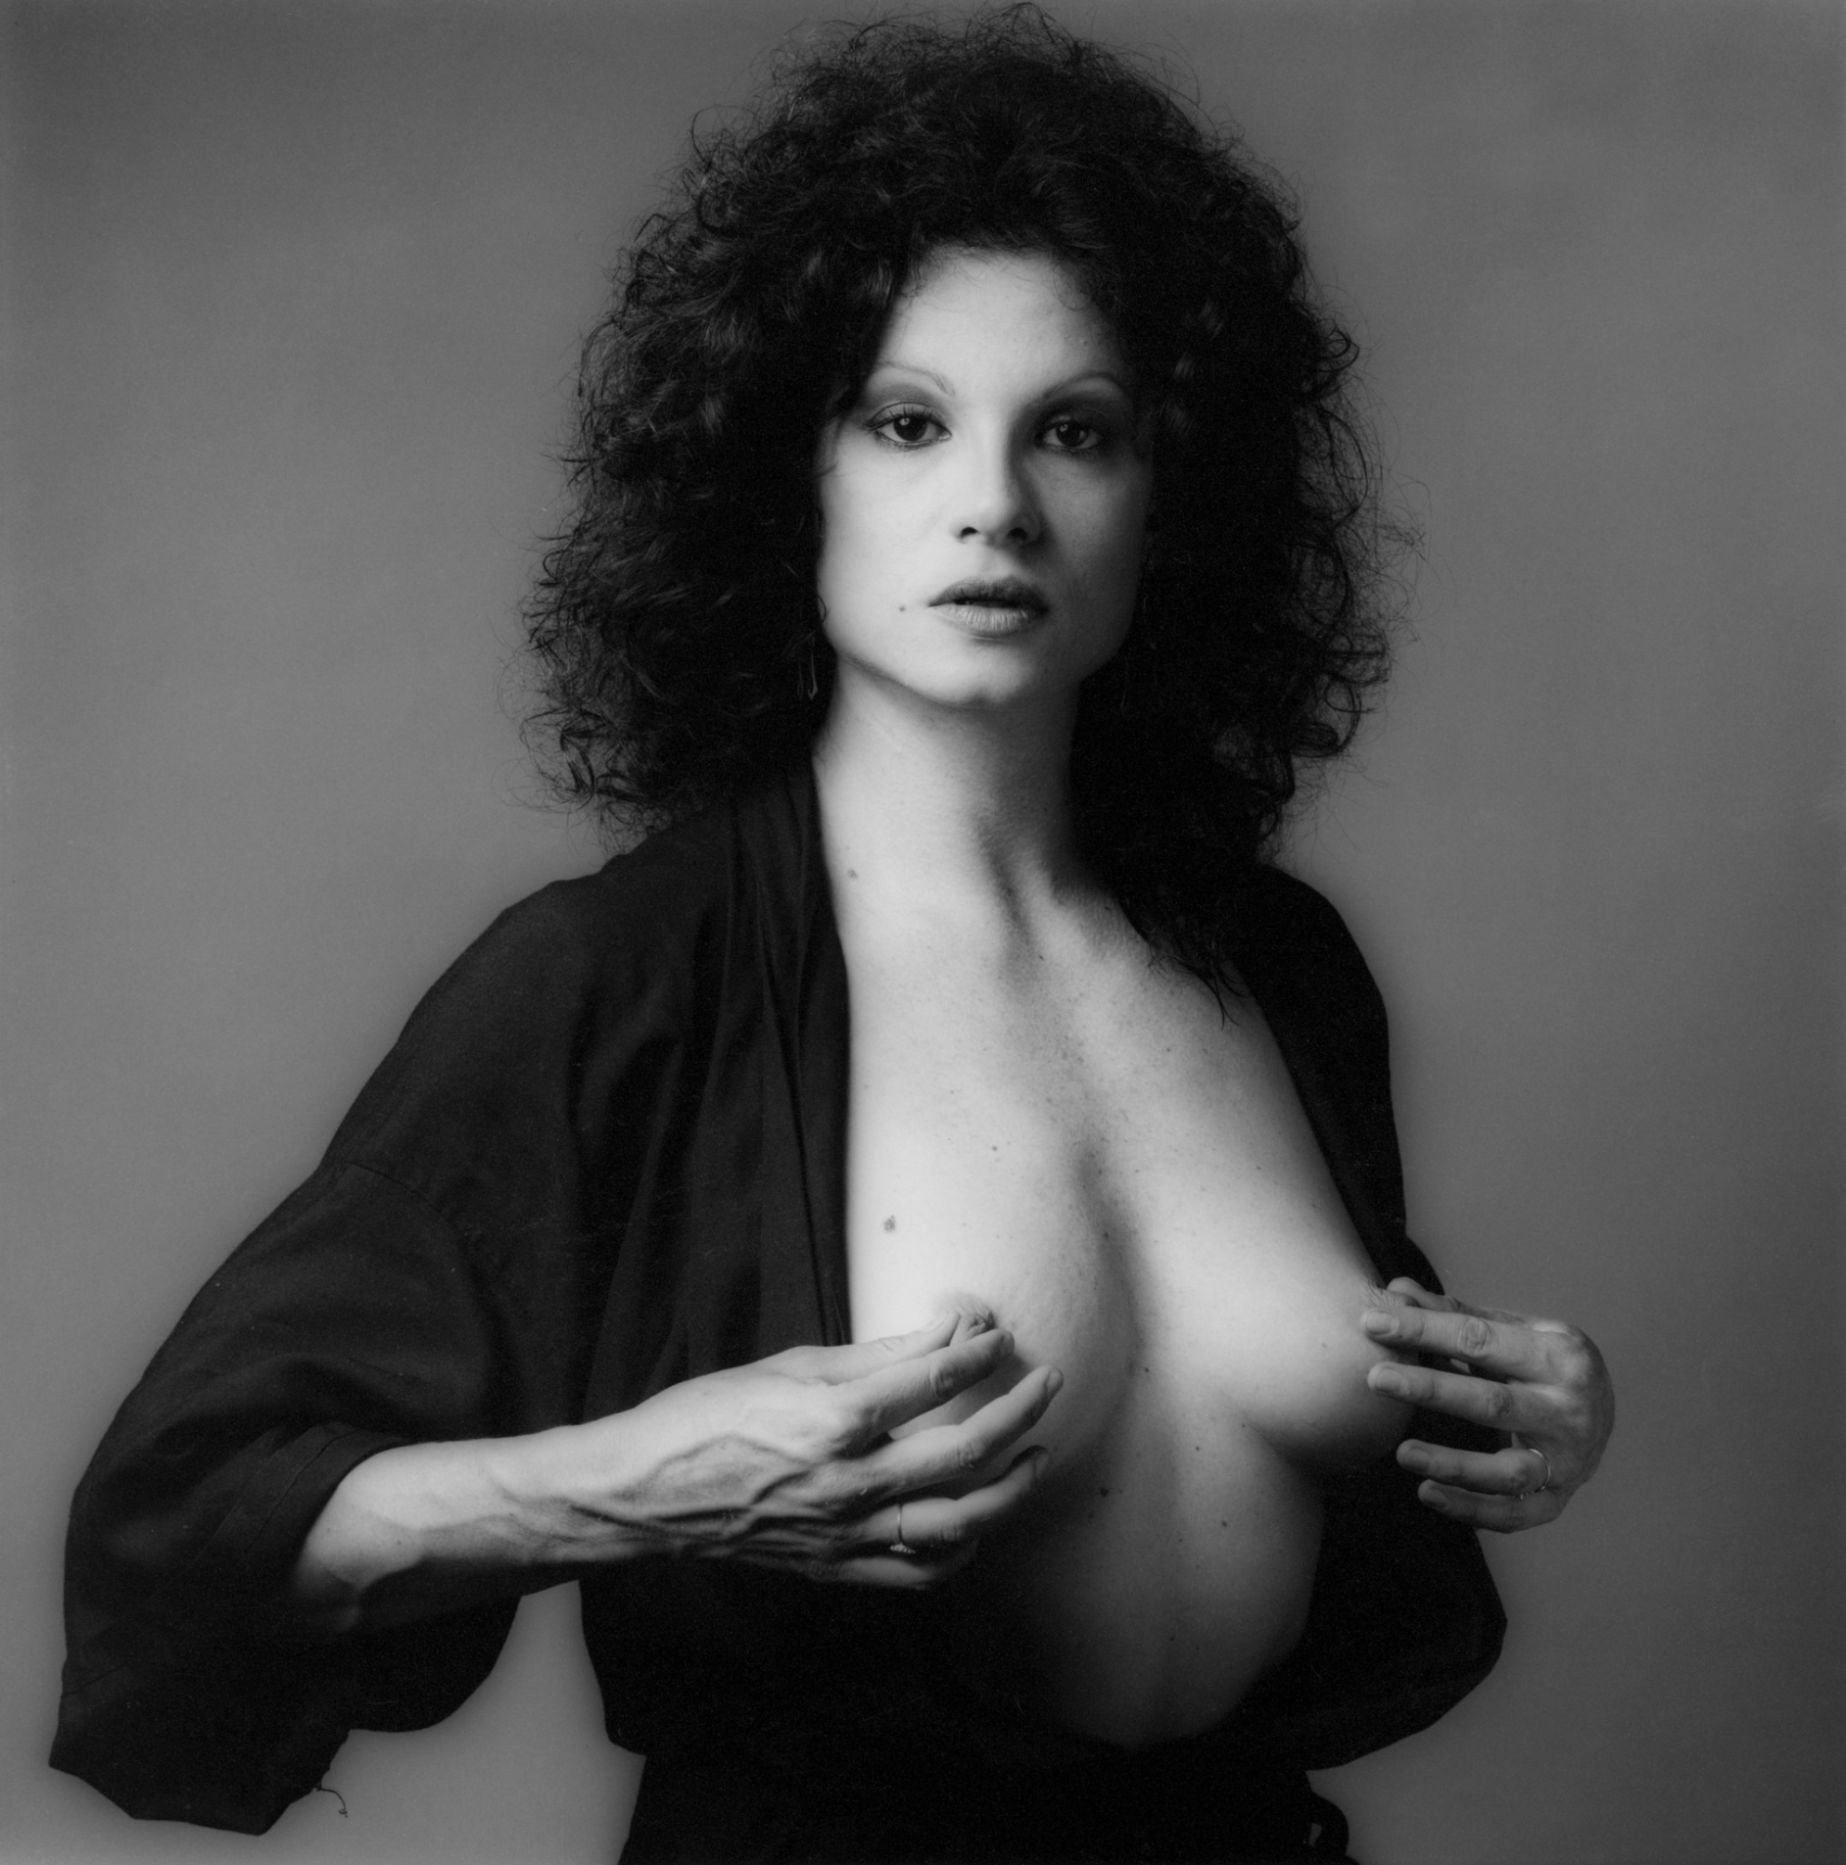 ROBERT MAPPLETHORPE FOTOGRAFIA A LISA LYON (1883)